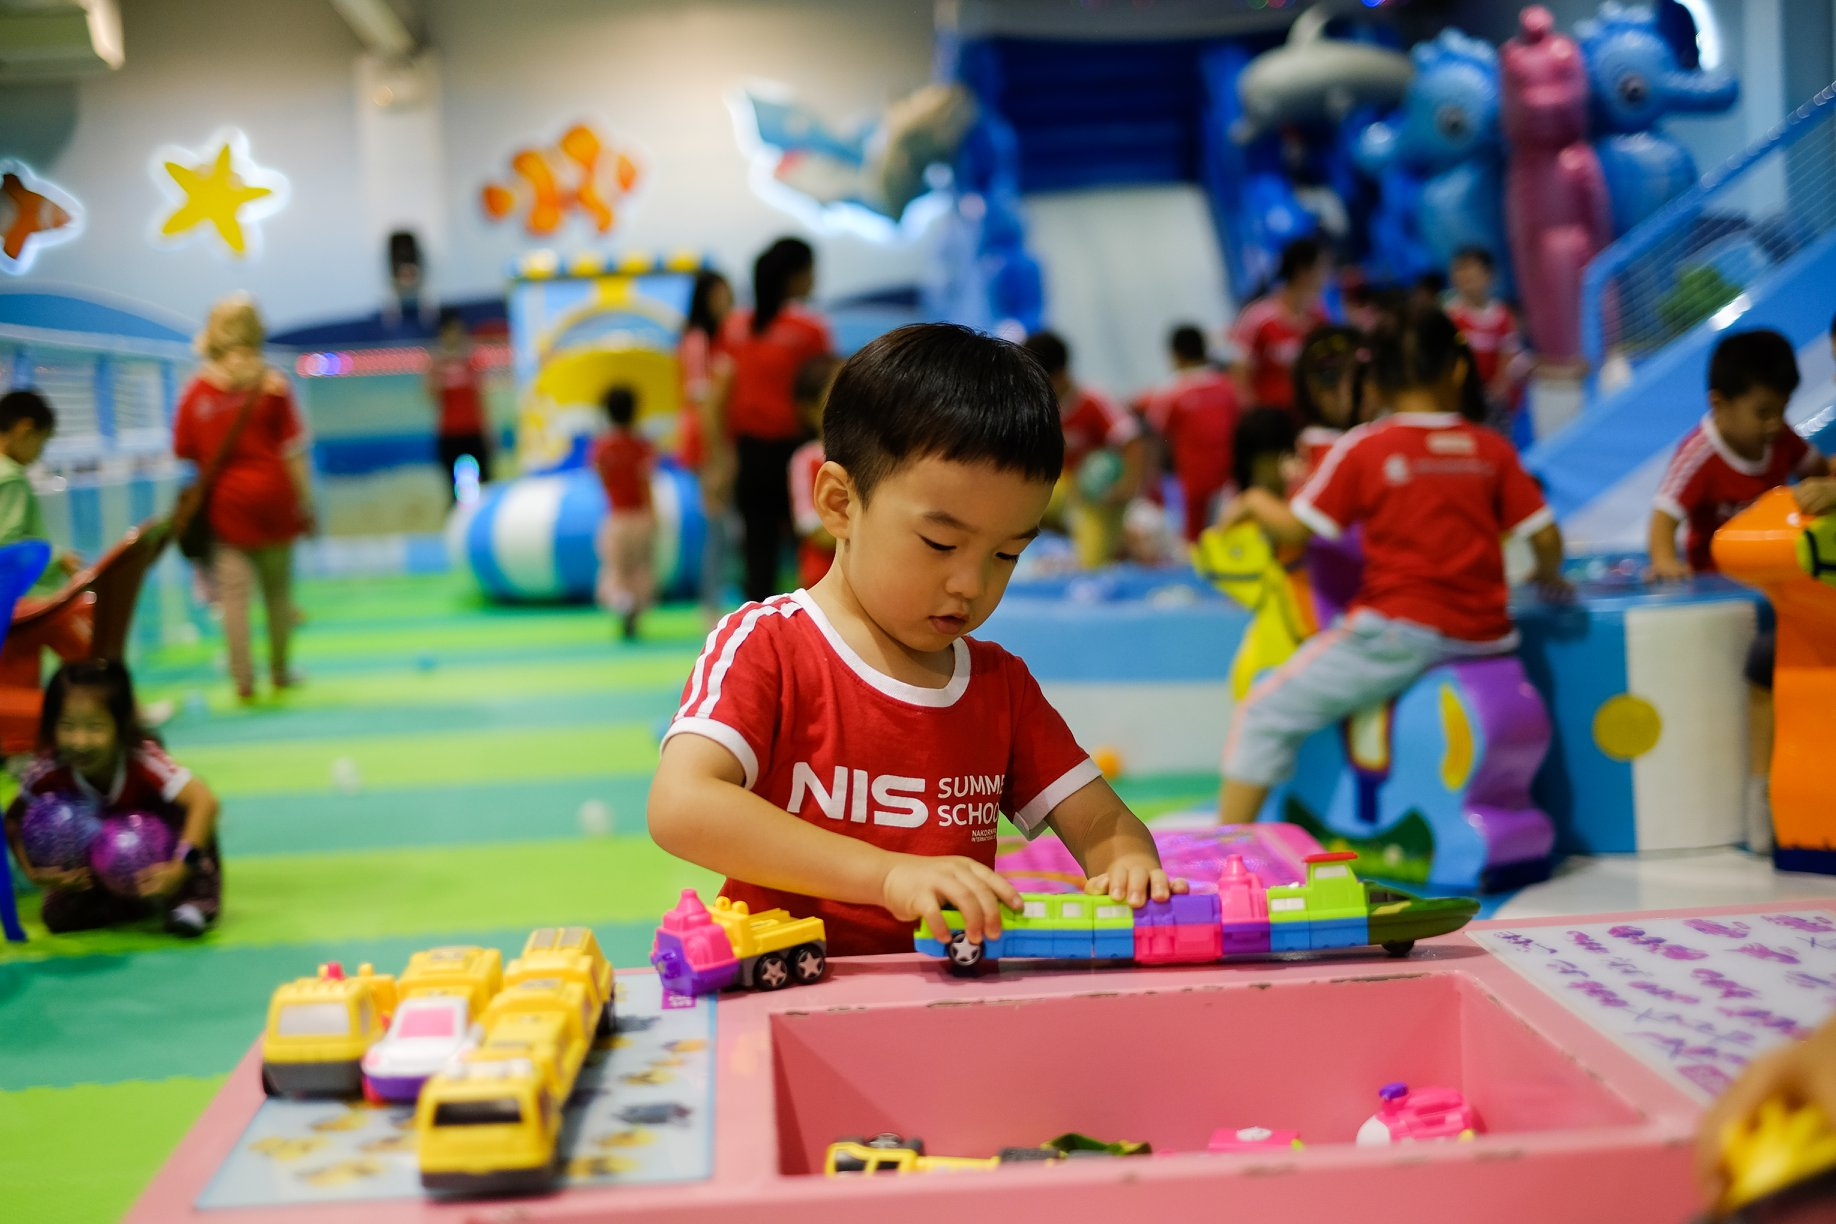 NIS-Summer-School-2019-Day-Kiddy-Land-56